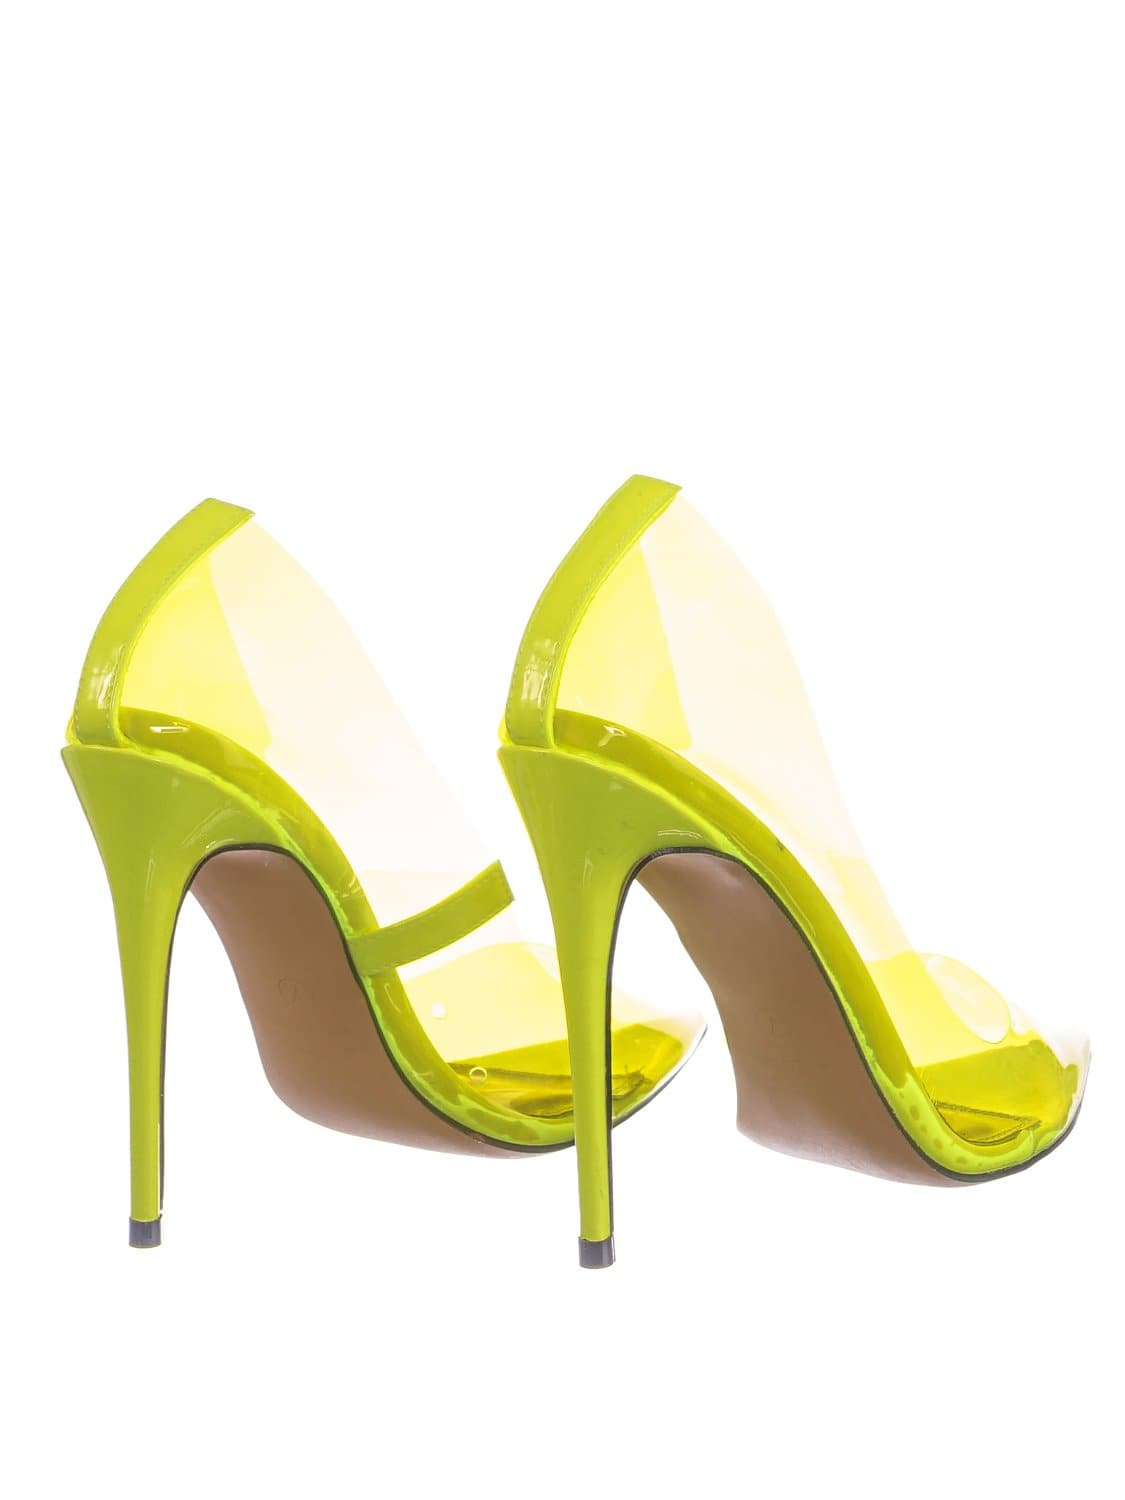 Kimye1 NLime Lucite Clear High Heel Dress Pump - Women Neon Pointed Toe Stiletto